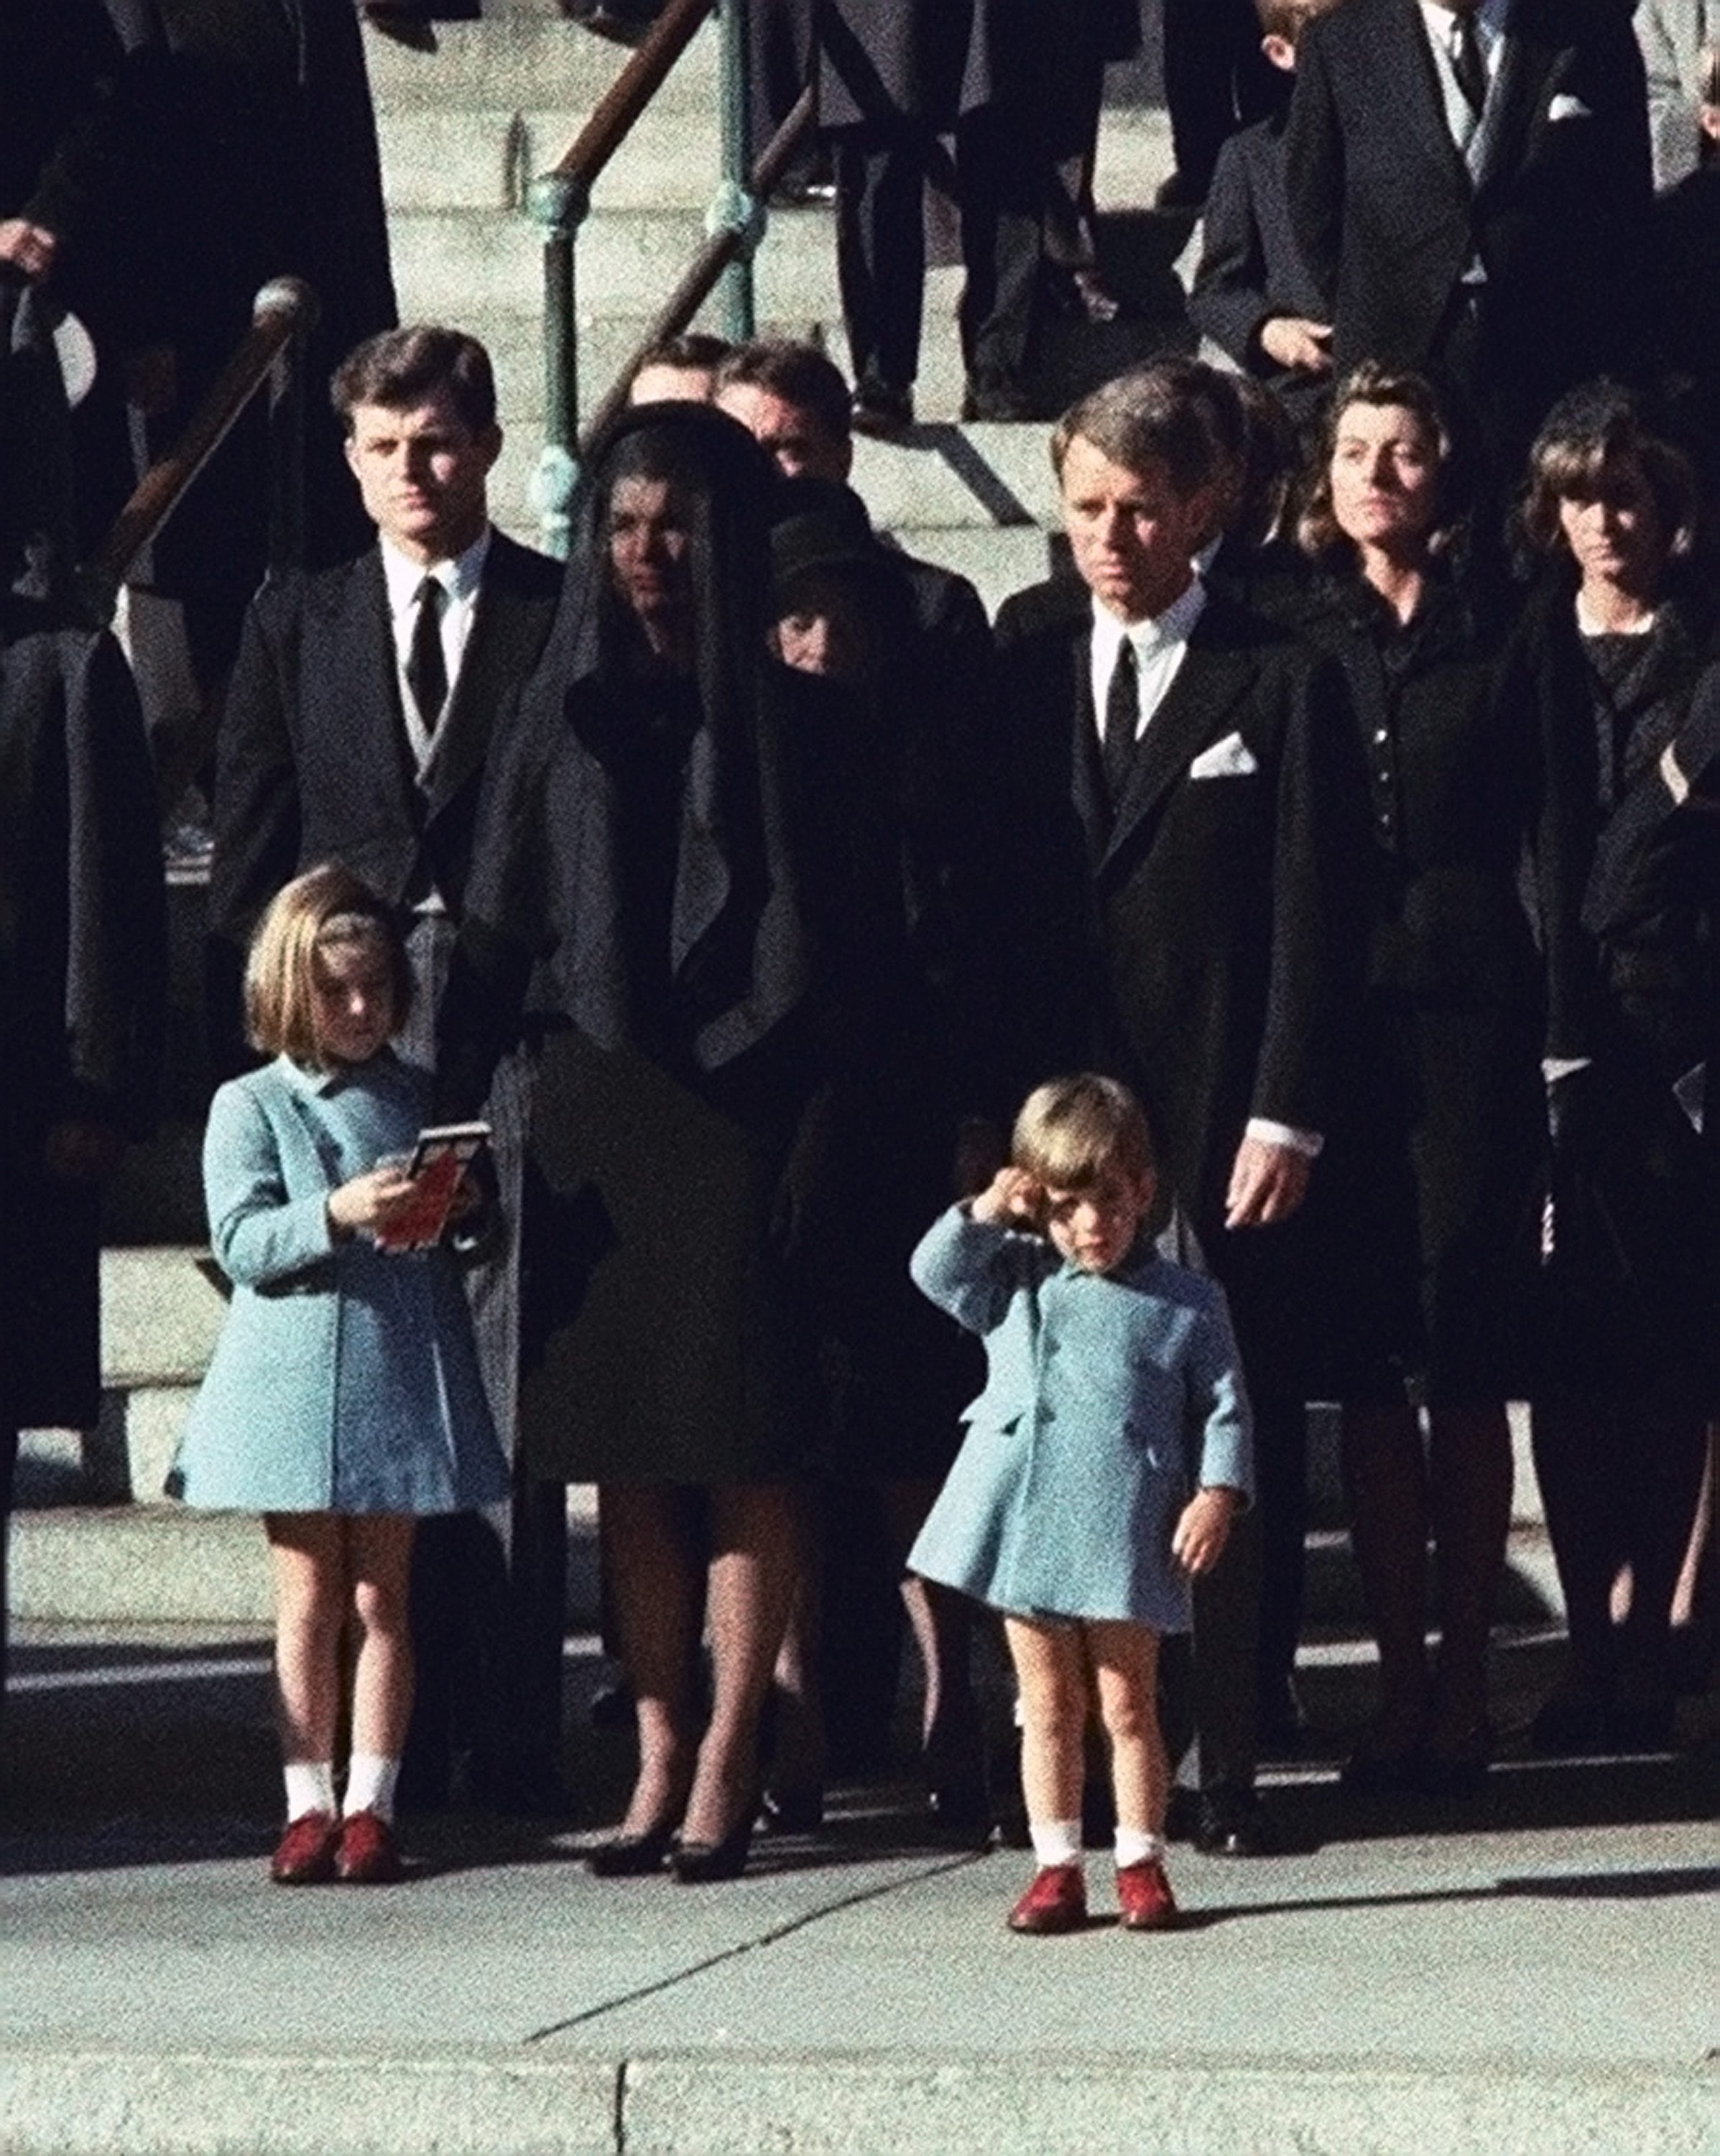 Three-year-old John F. Kennedy Jr. saluting his father's casket